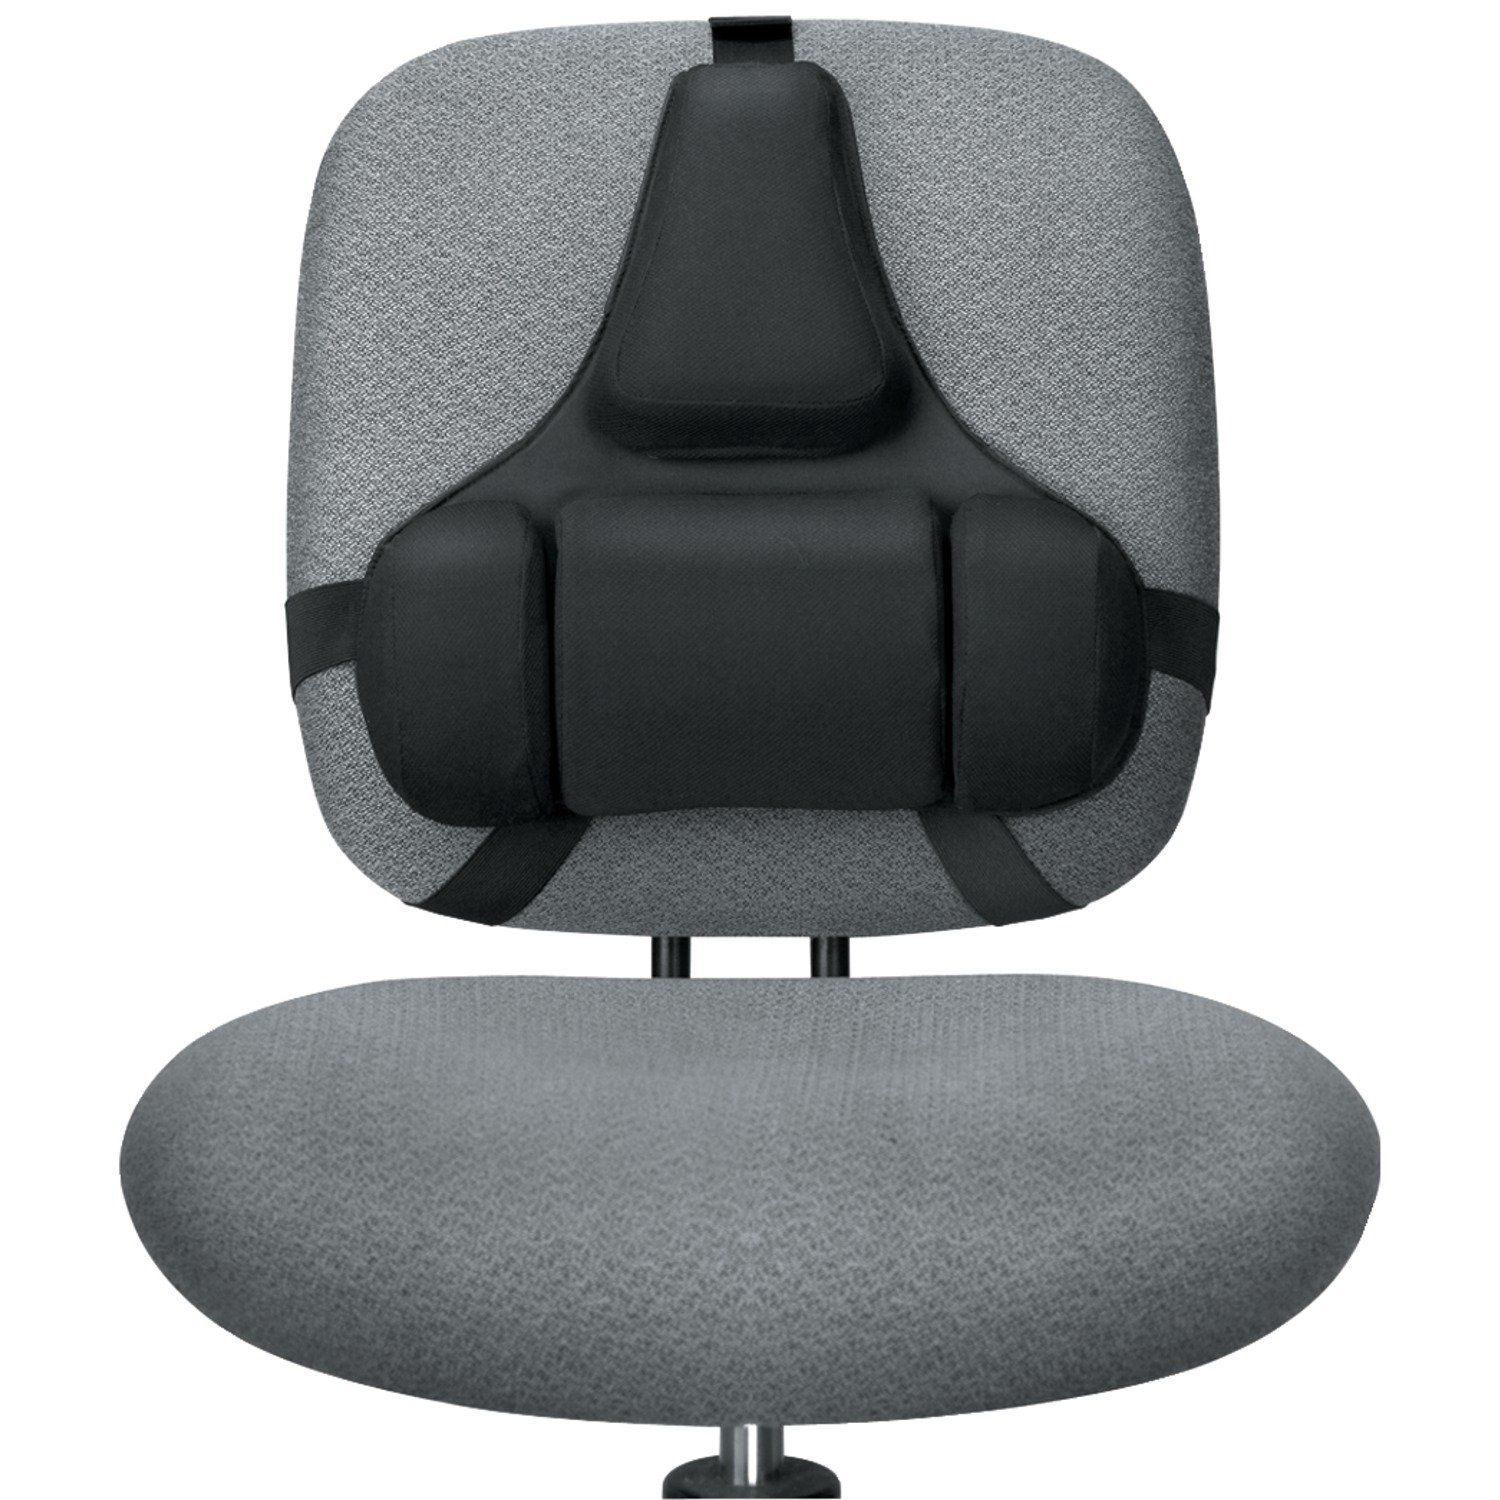 ergonomic chair back support cushion how to repair patio chairs fellowes professional series